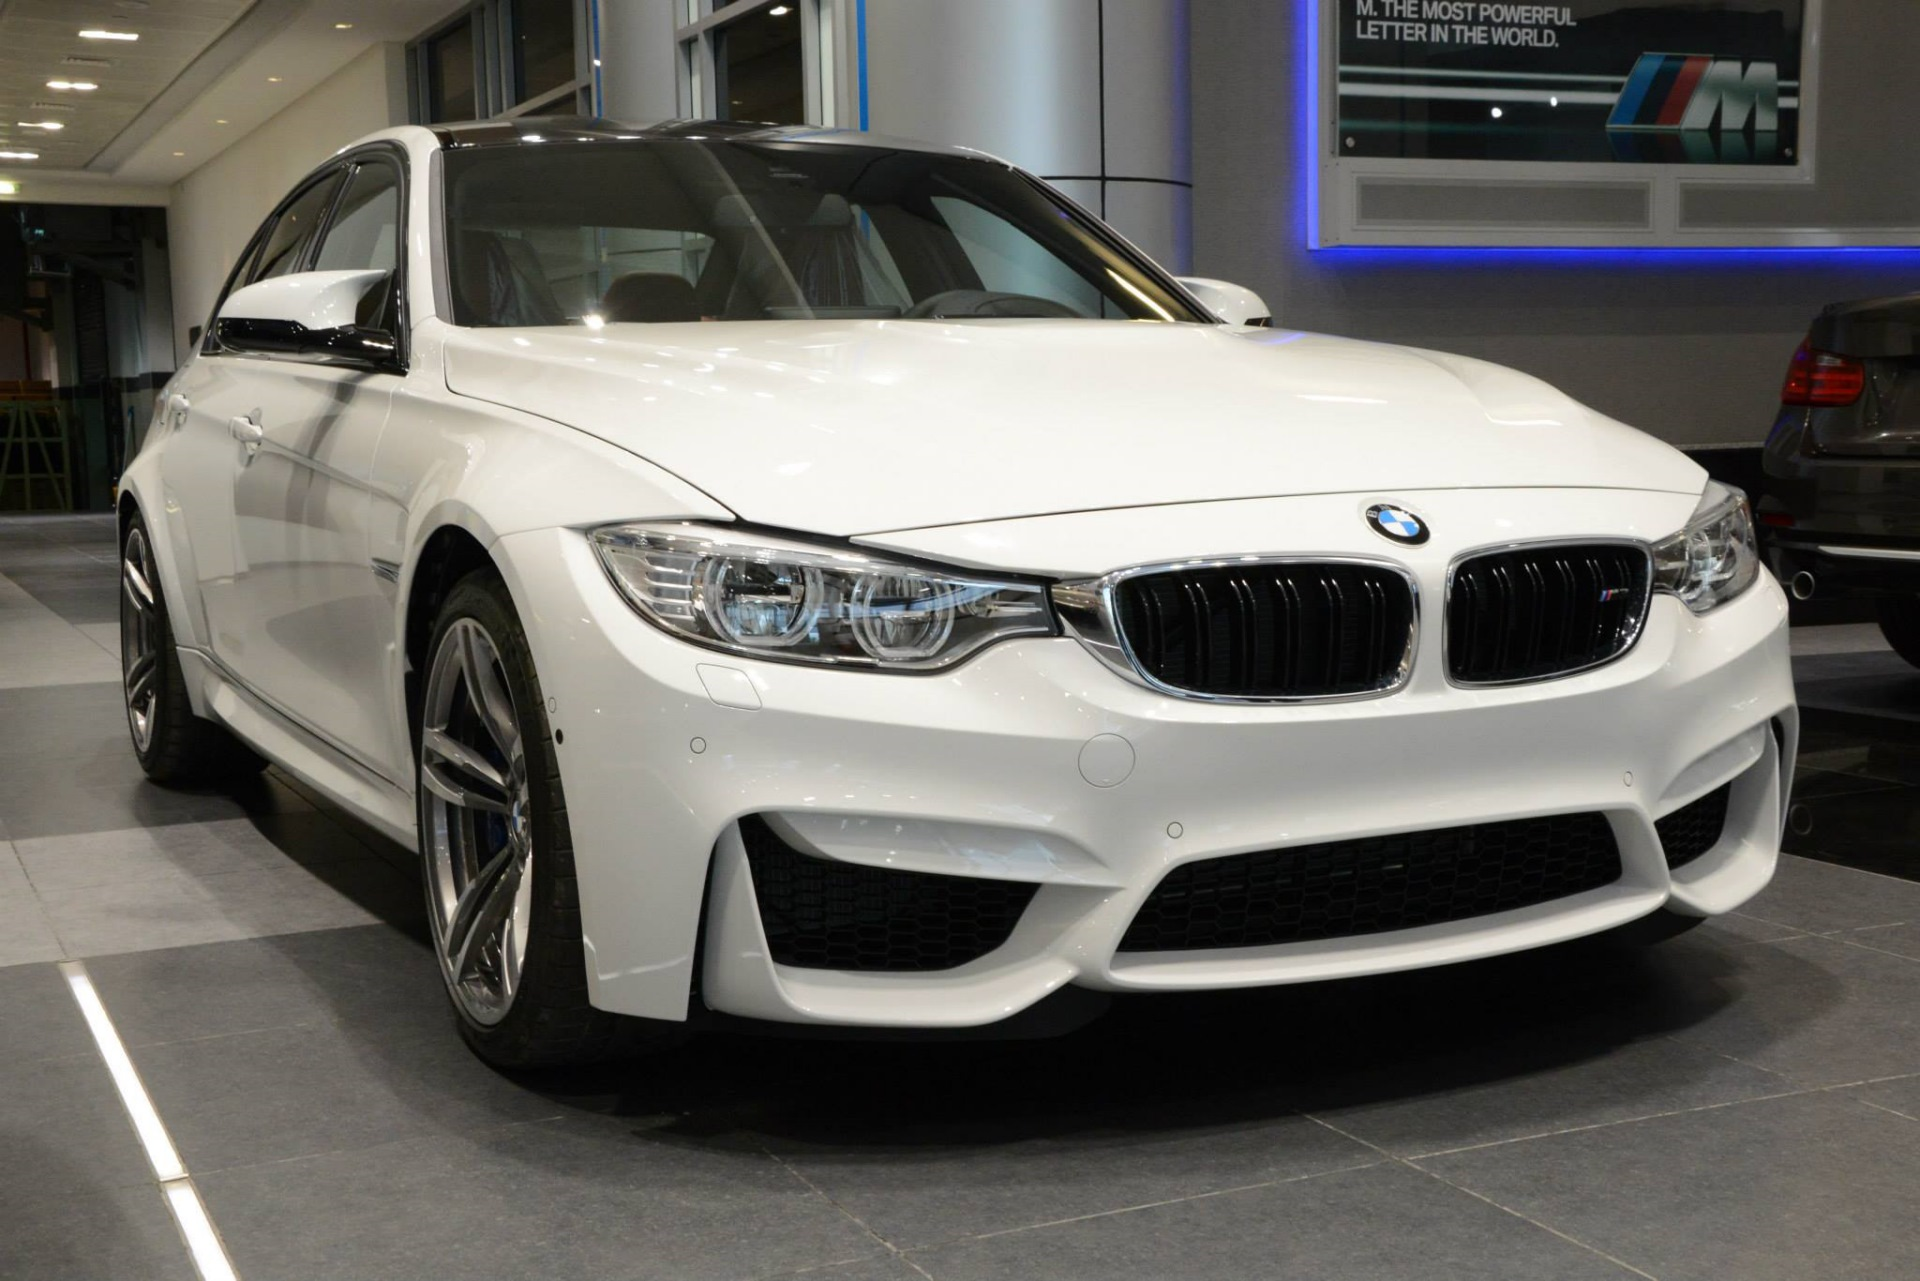 F80 Bmw M3 In Alpine White At Abu Dhabi Motors